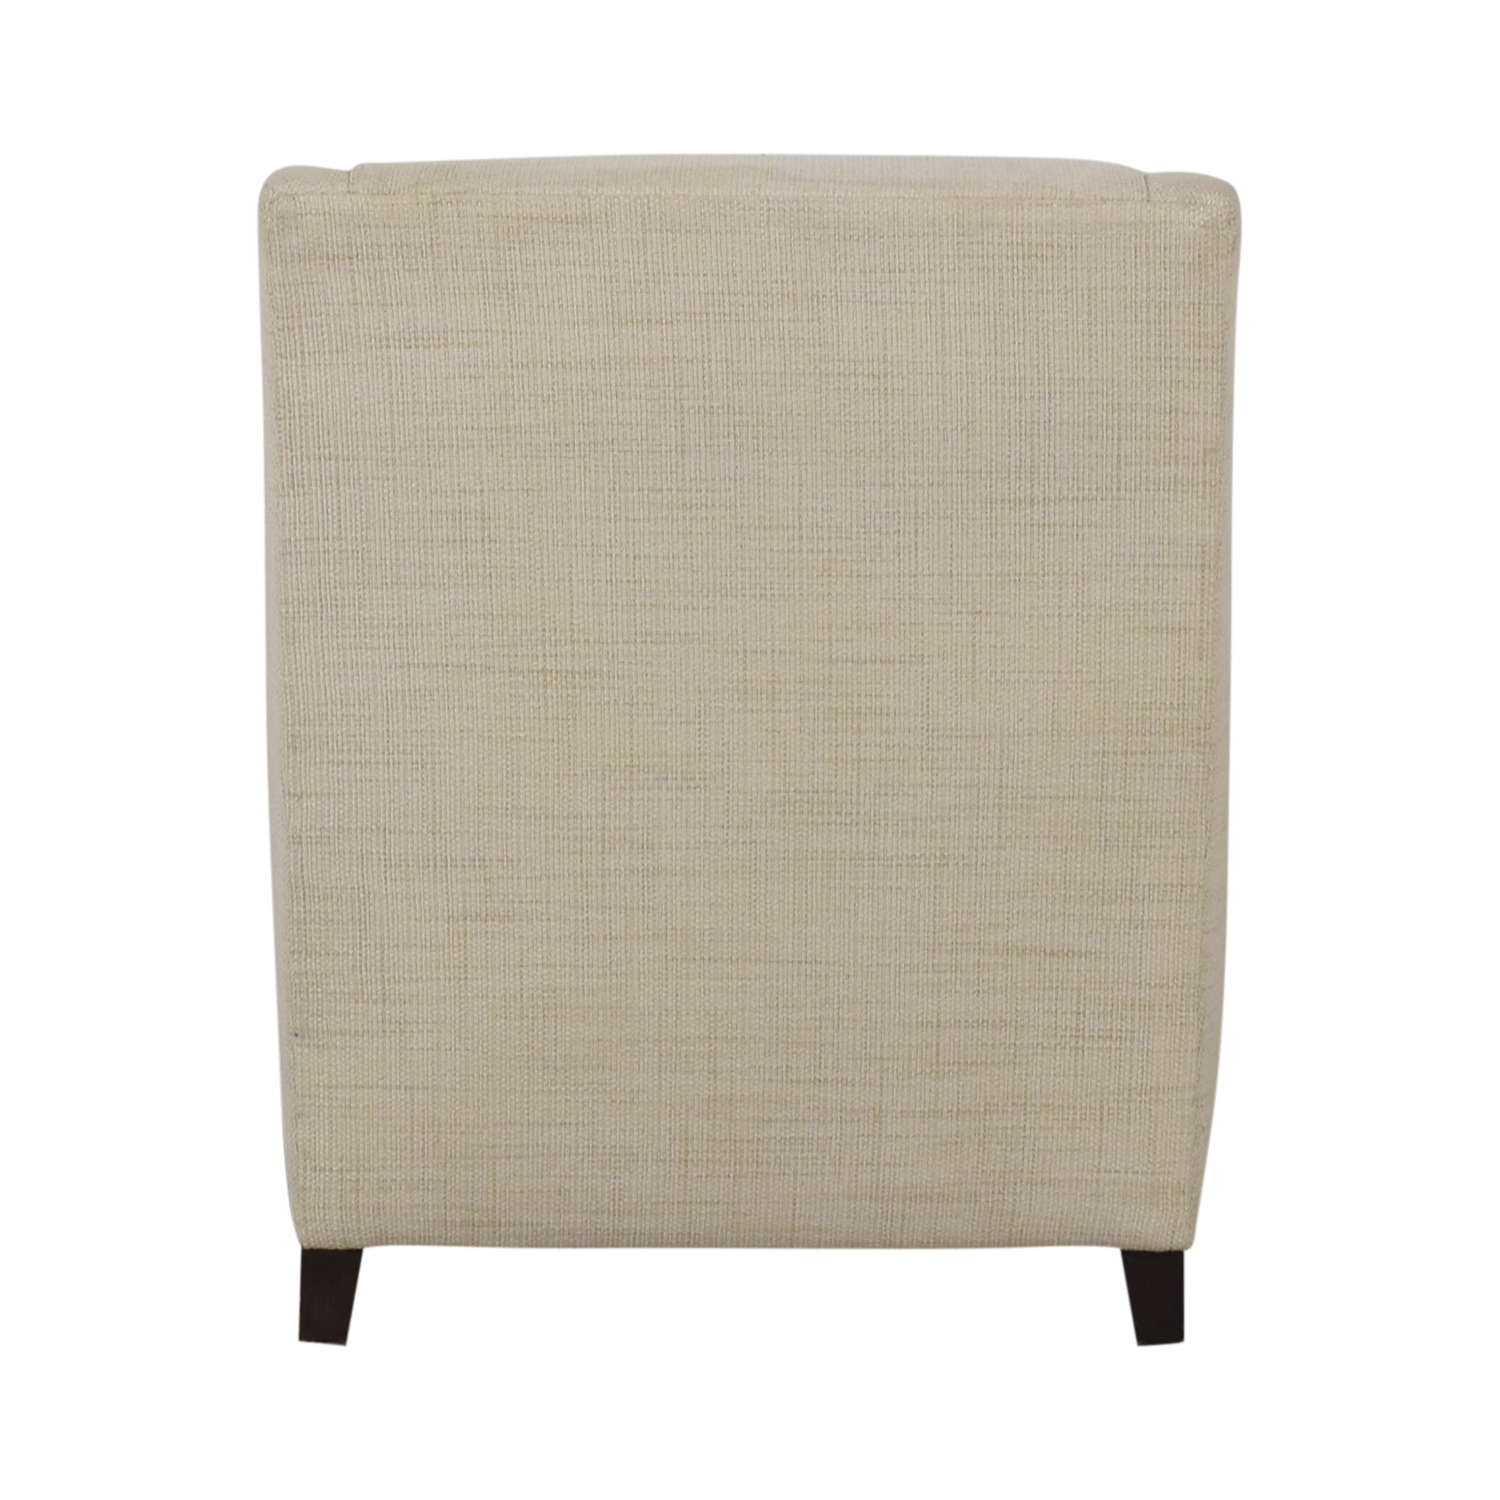 buy West Elm Sweep Accent Chair West Elm Chairs